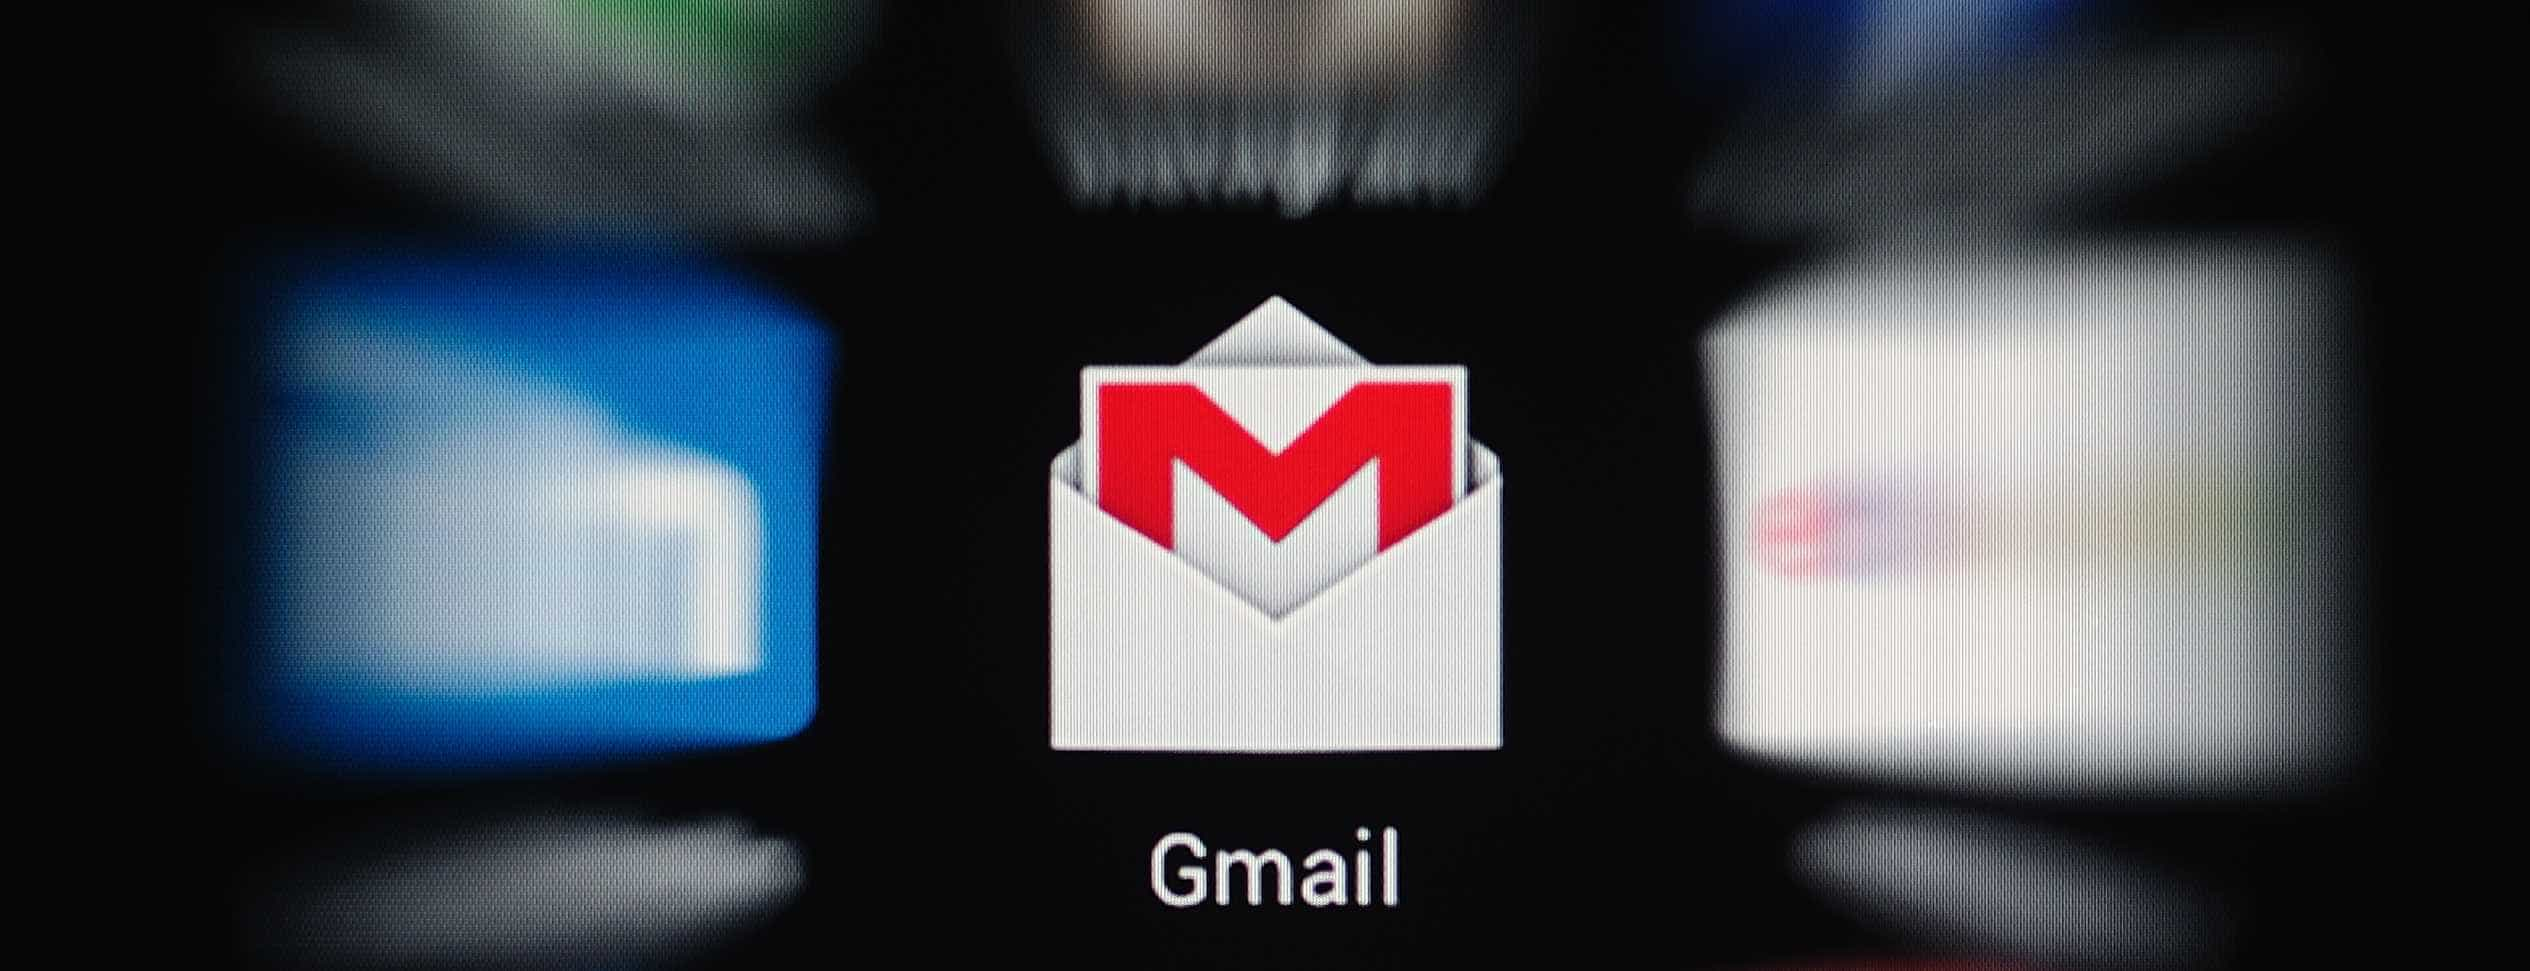 E-mail autodestrutivo, novo visual e modo soneca: as mudanças no Gmail